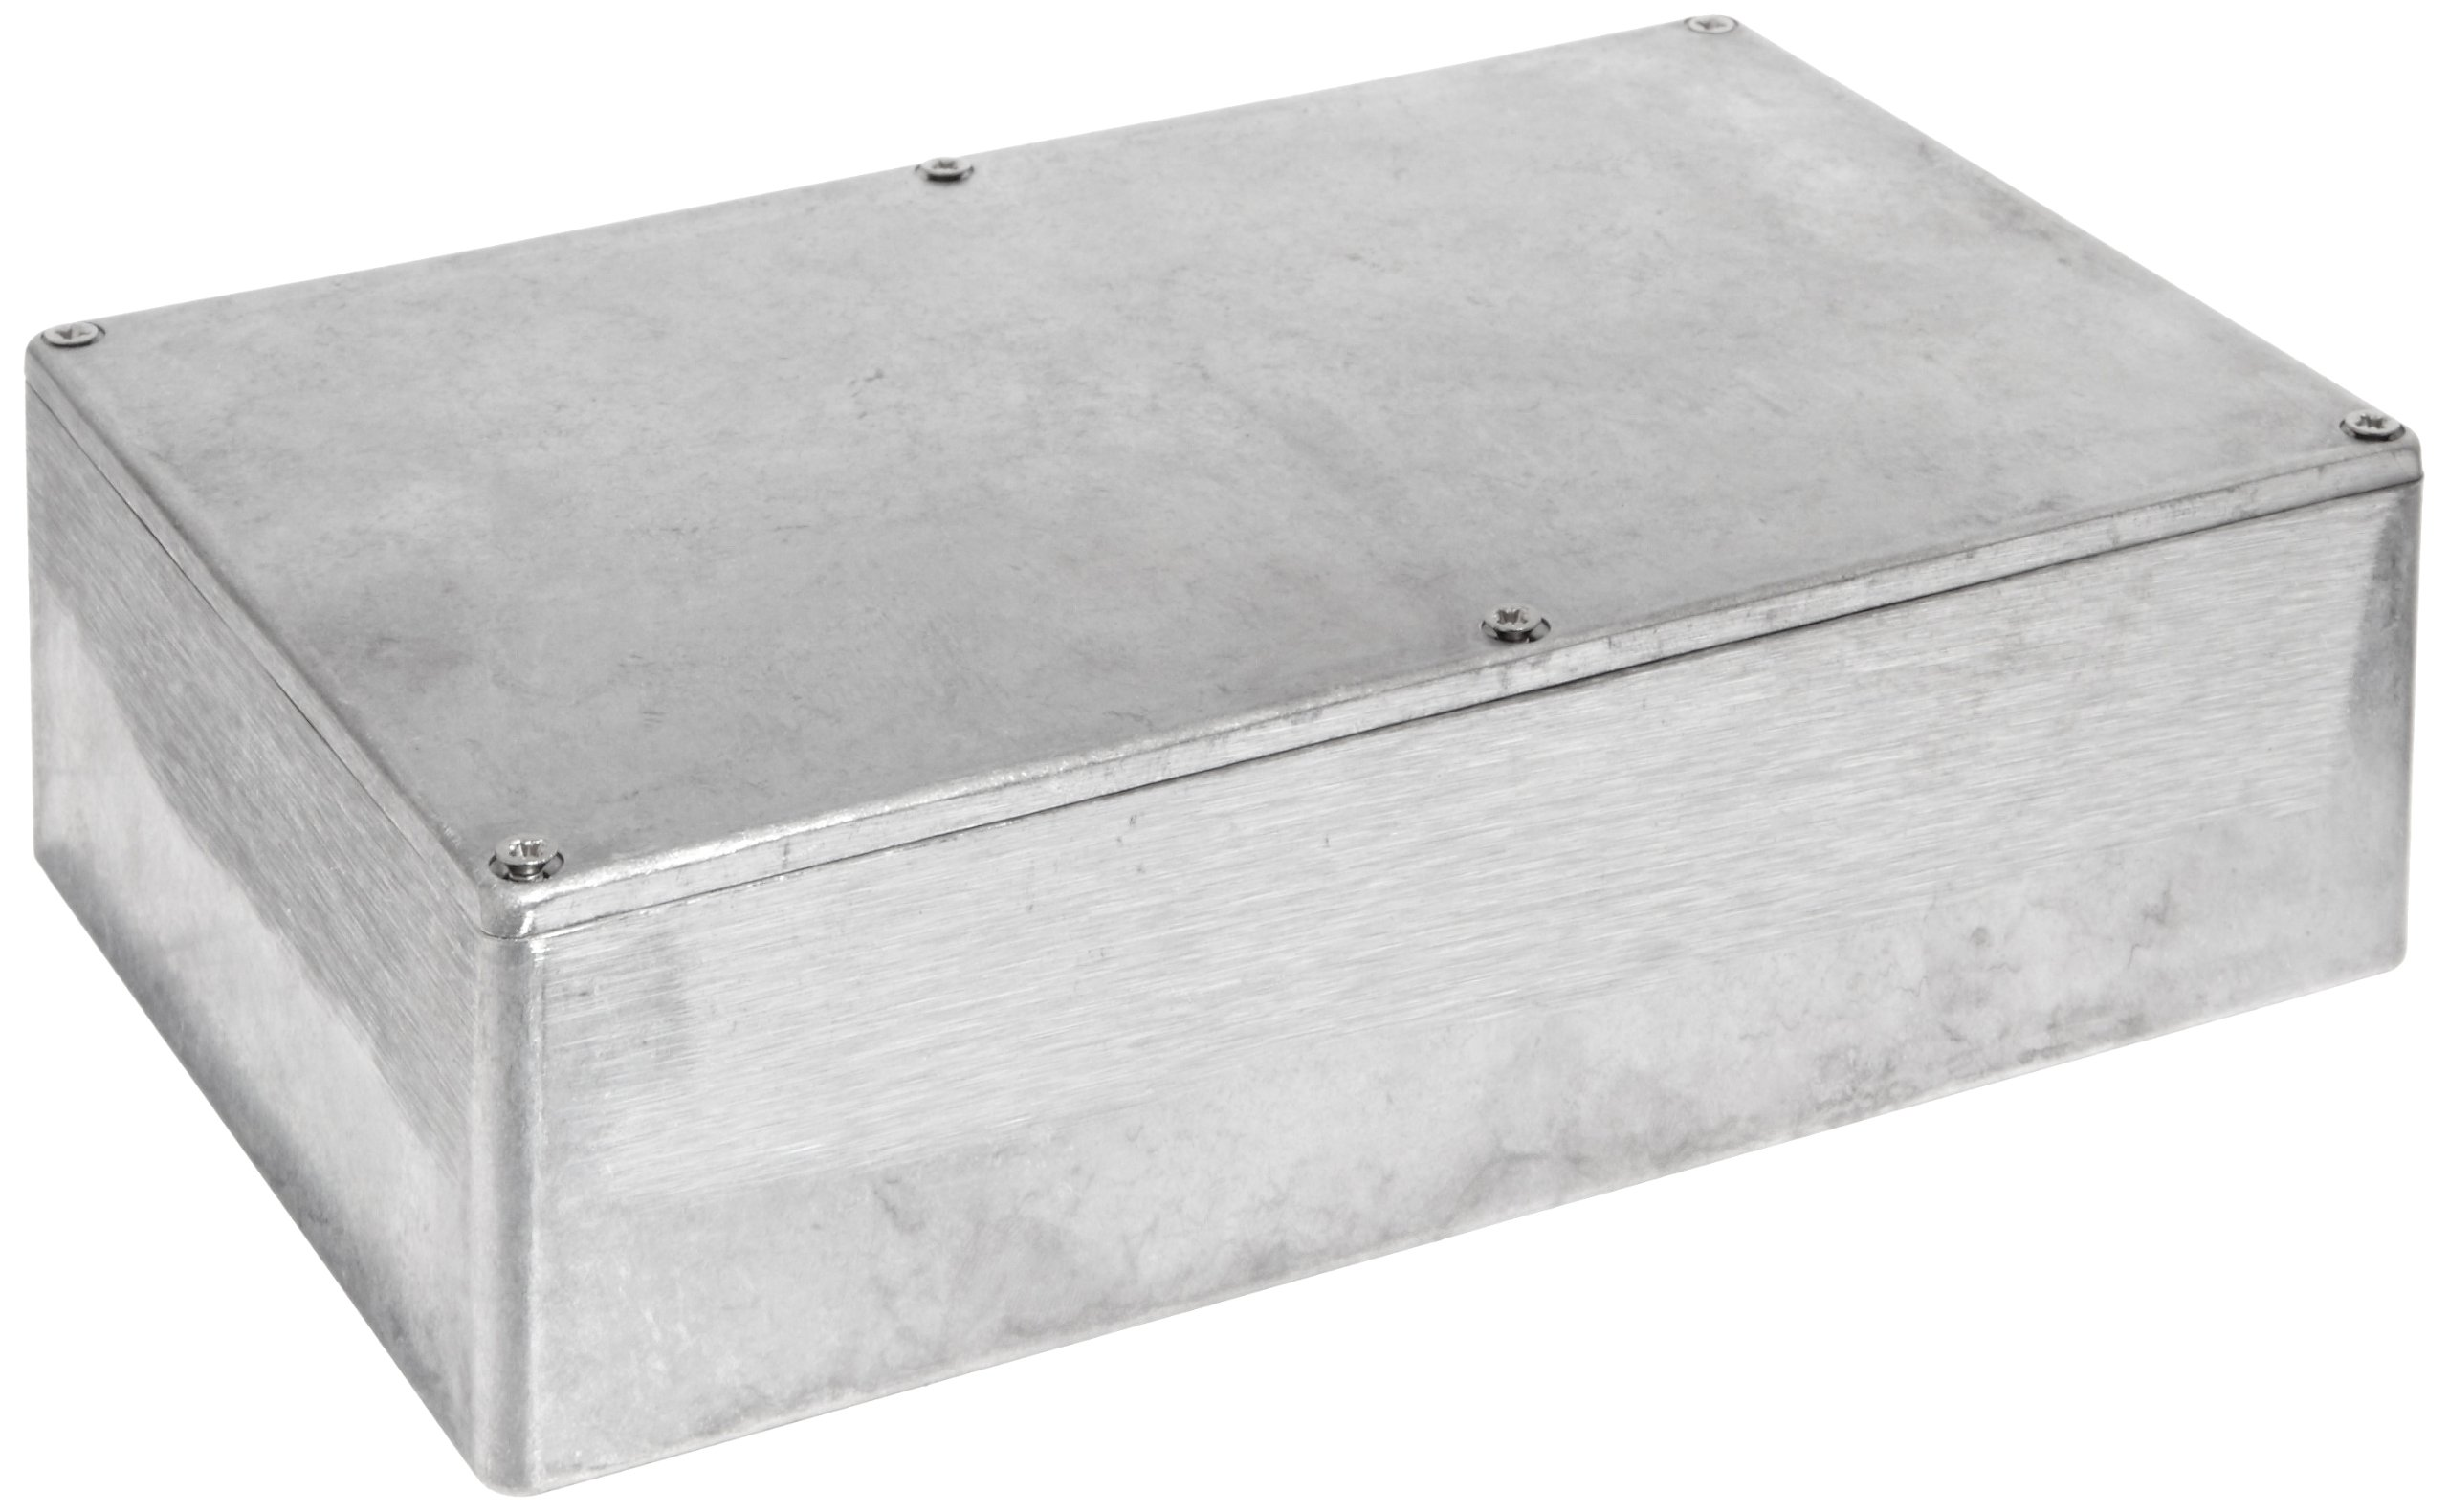 BUD Industries CN-5711 Die Cast Aluminum Enclosure, 8-3/4'' Length x 5-47/64'' Width x 2-1/4'' Height, Natural Finish